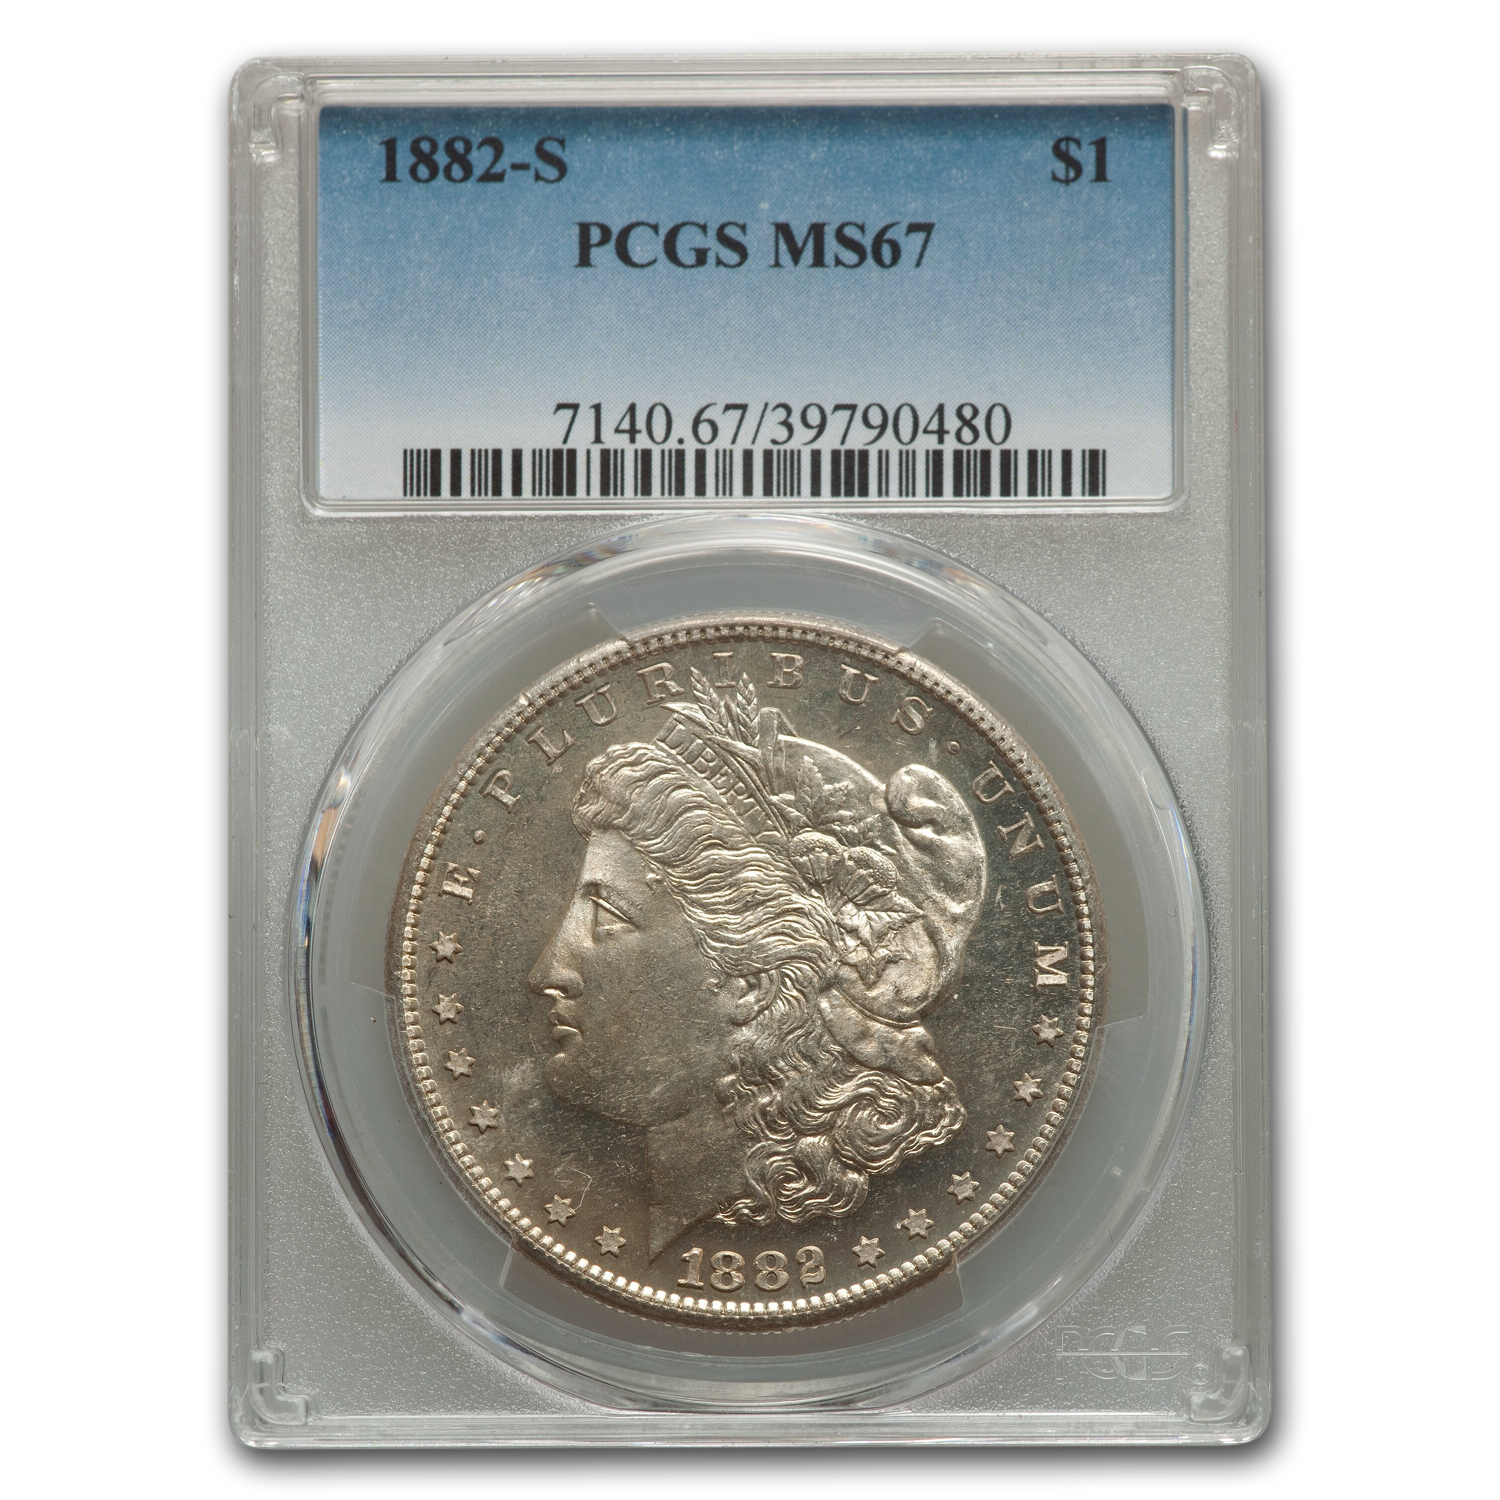 1882-S Morgan Dollar - MS-67 PCGS